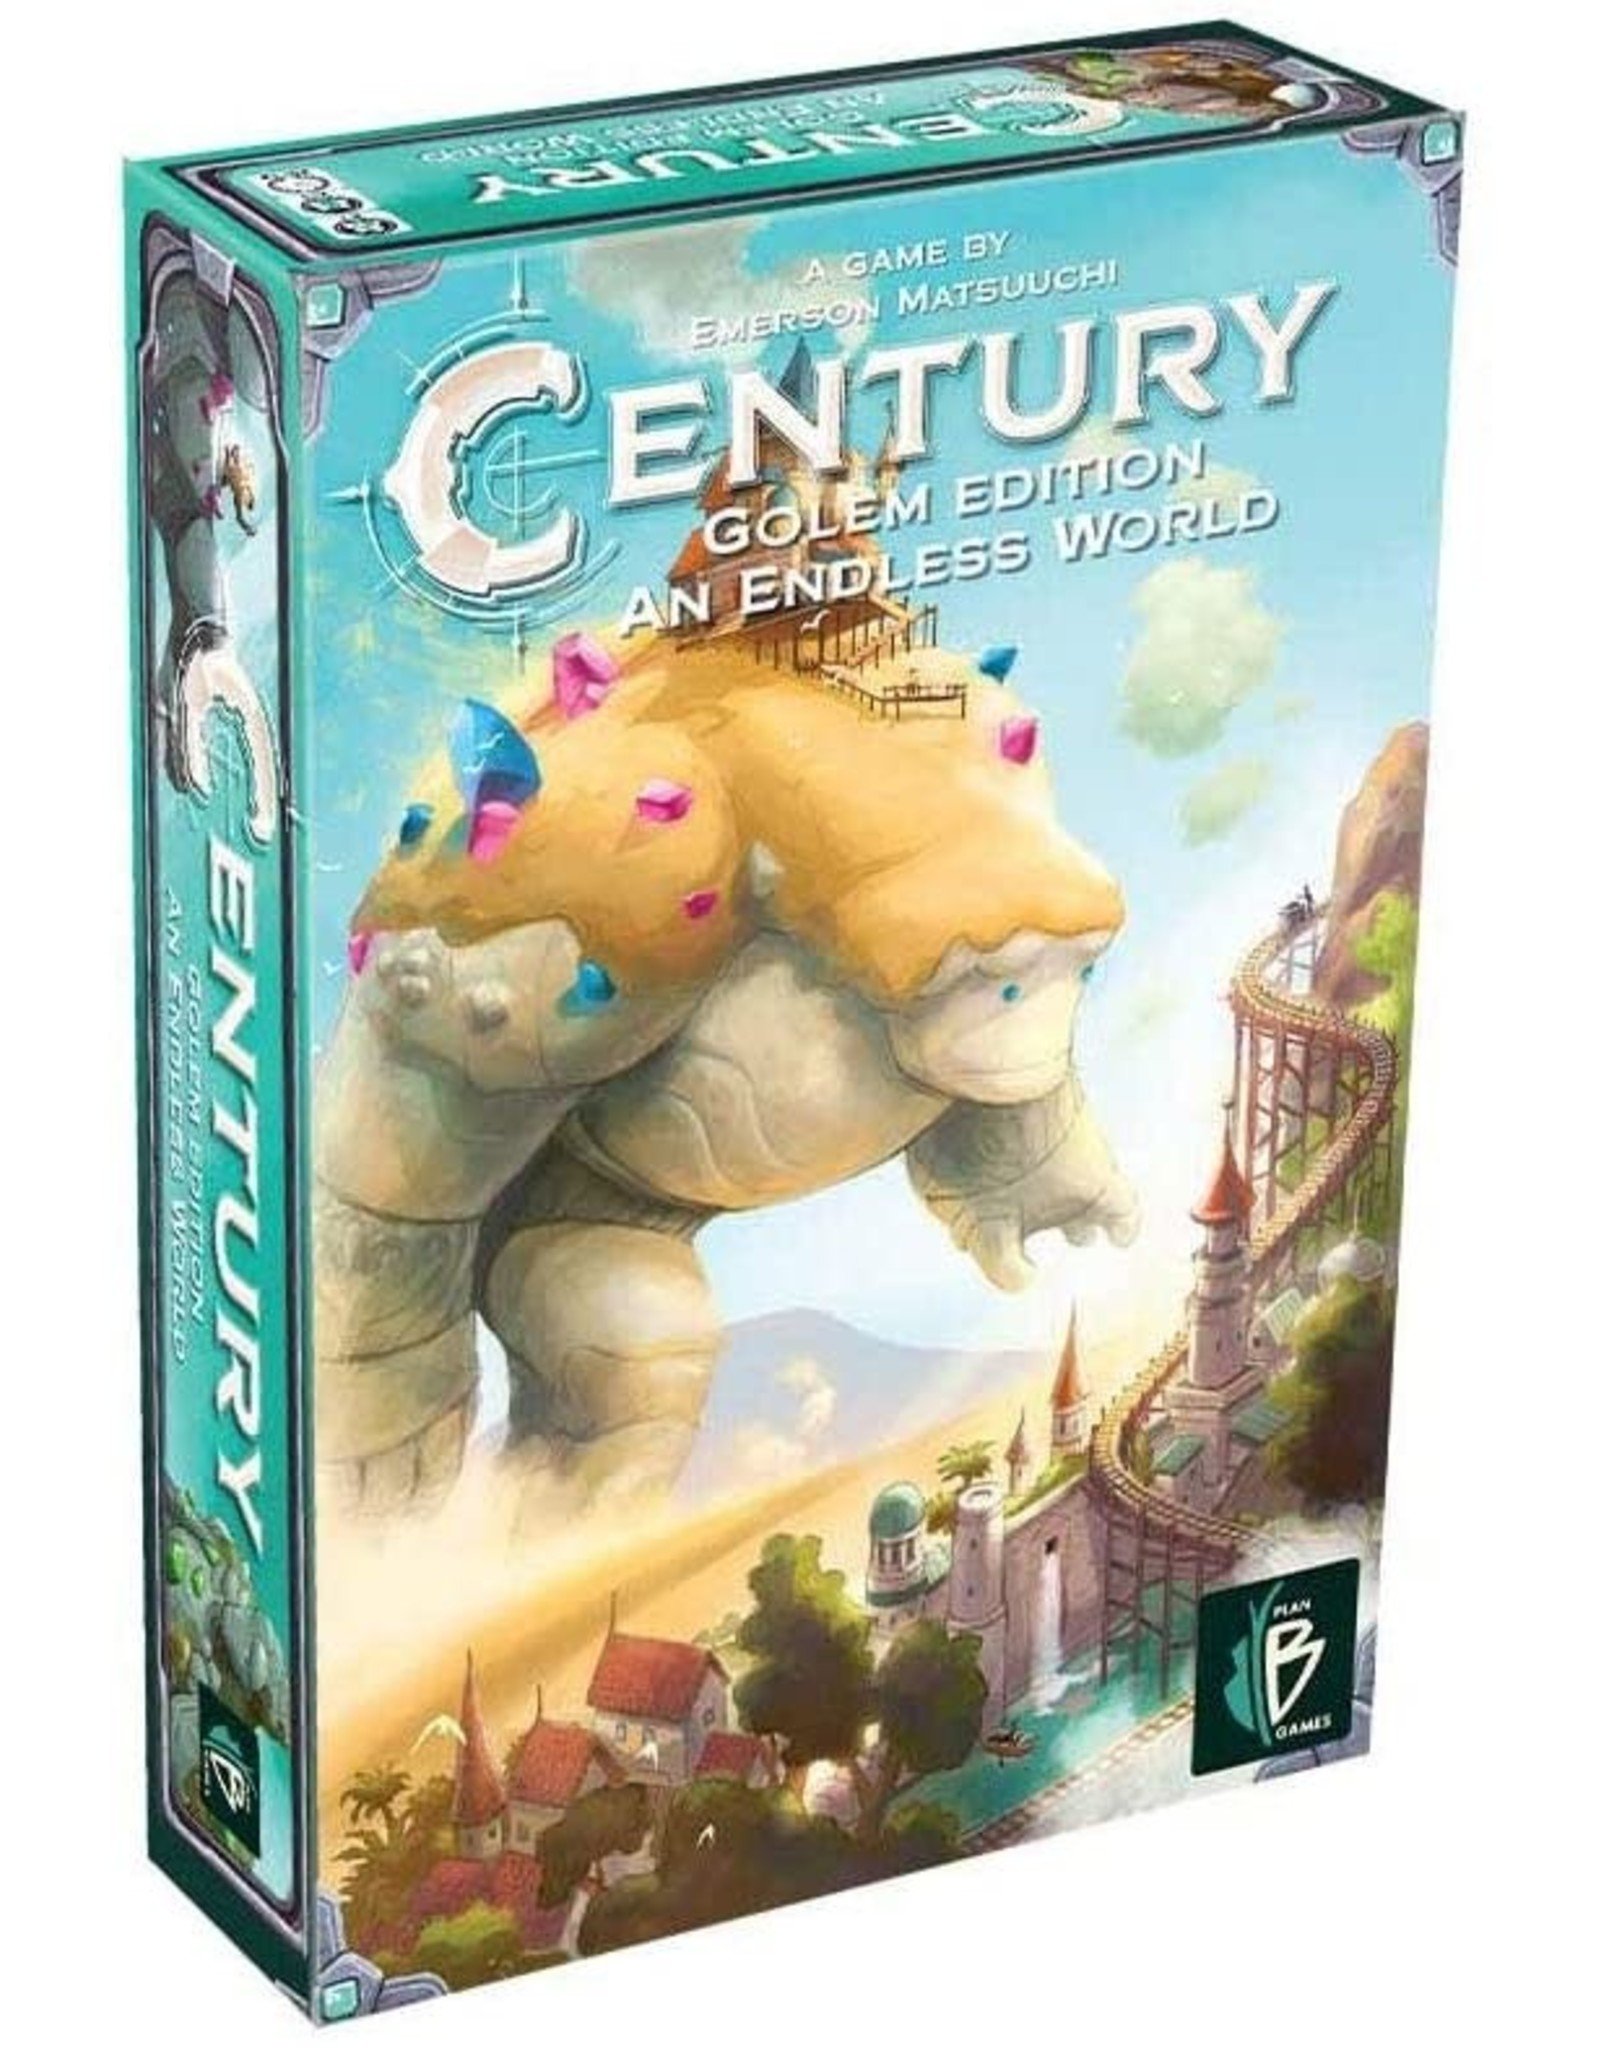 CENTURY GOLEM AN ENDLESS WORLD